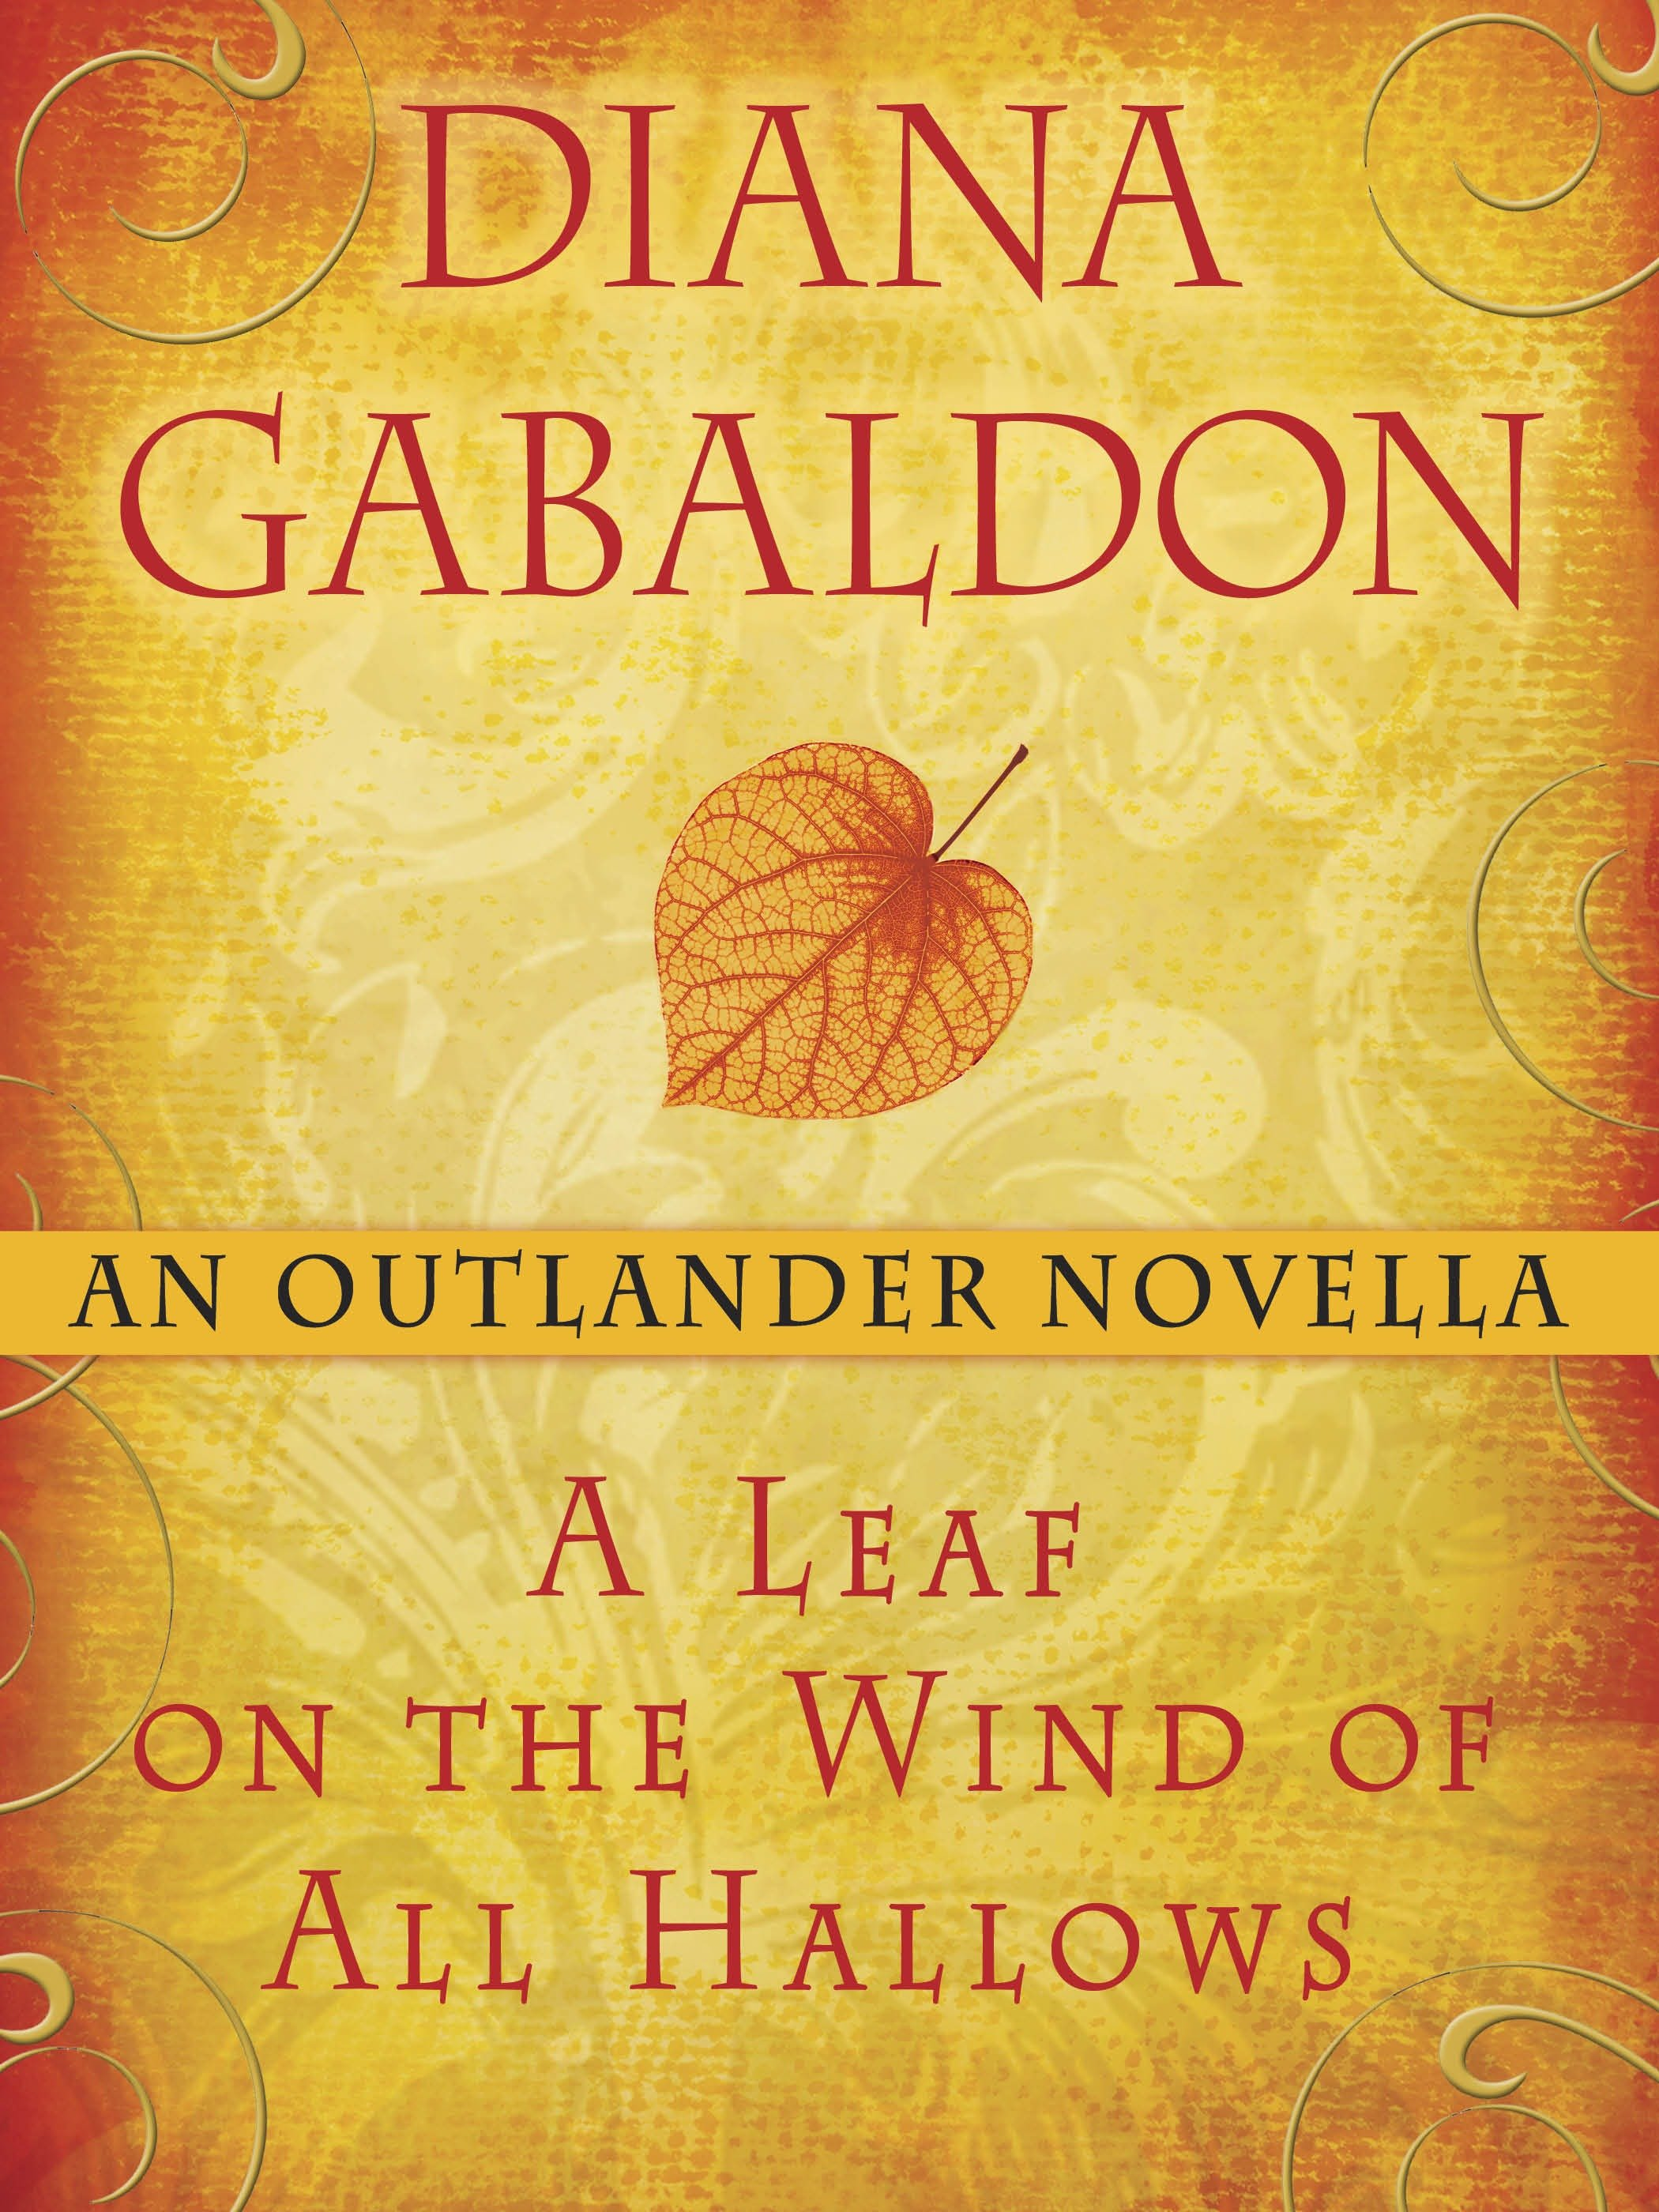 A leaf on the wind of All Hallows: an outlander novella cover image